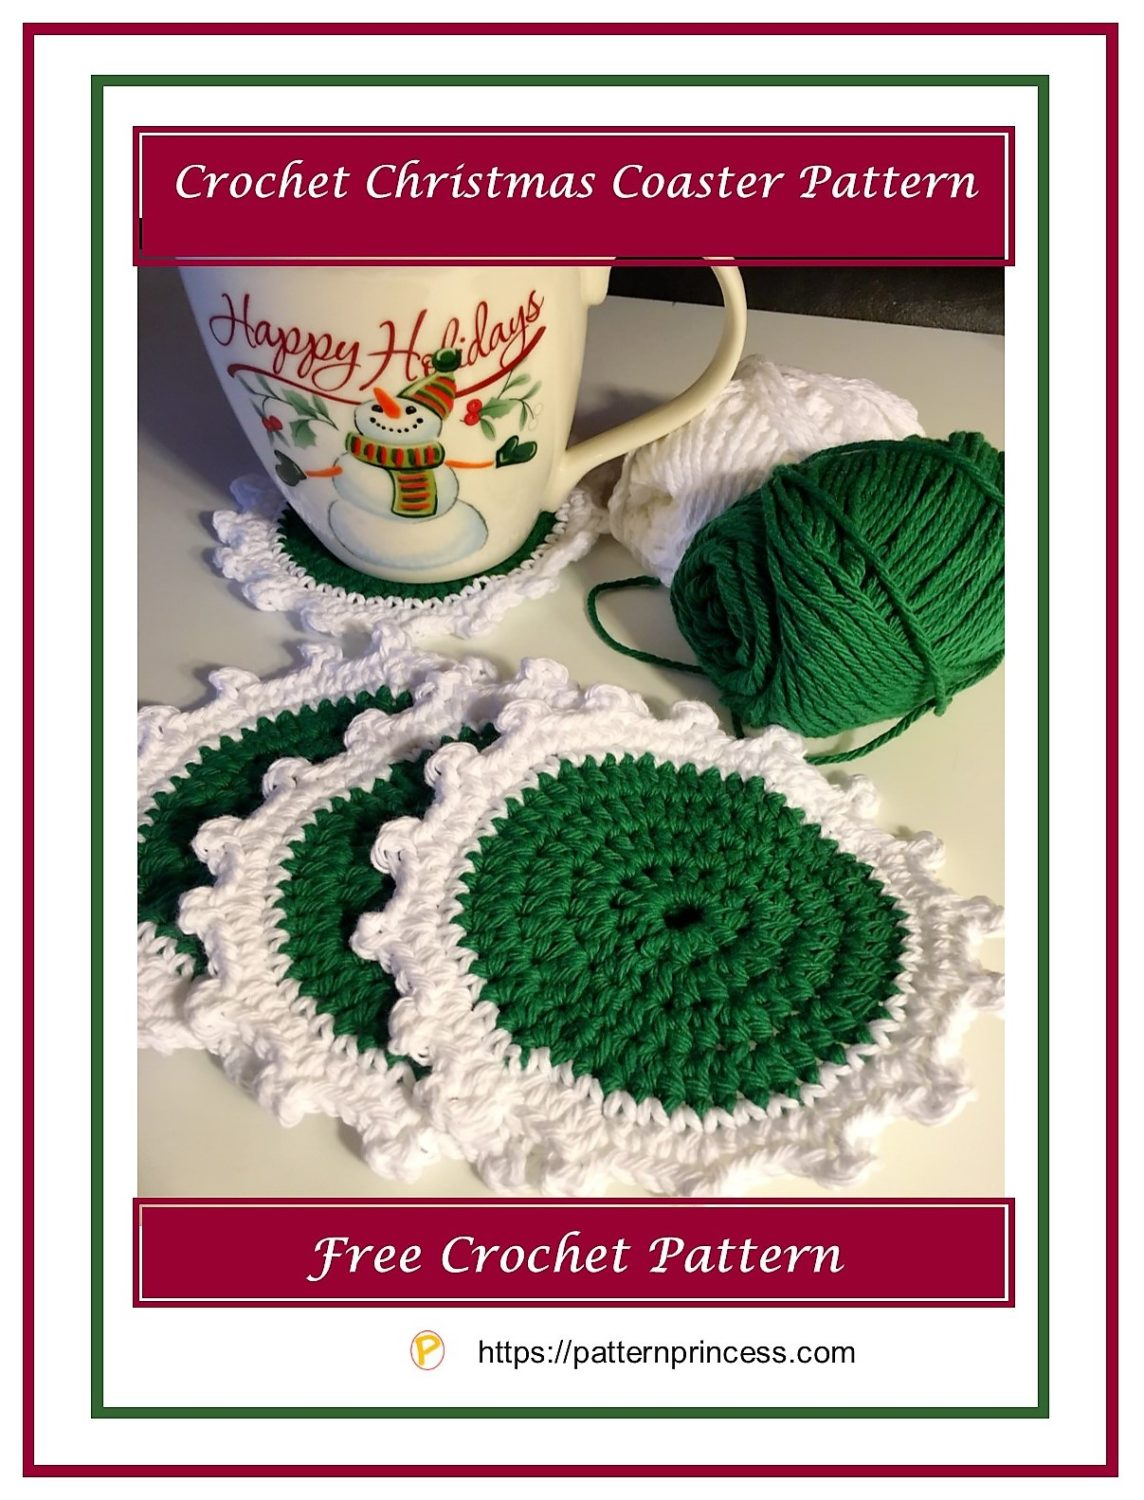 Crochet Christmas Coaster Pattern 1